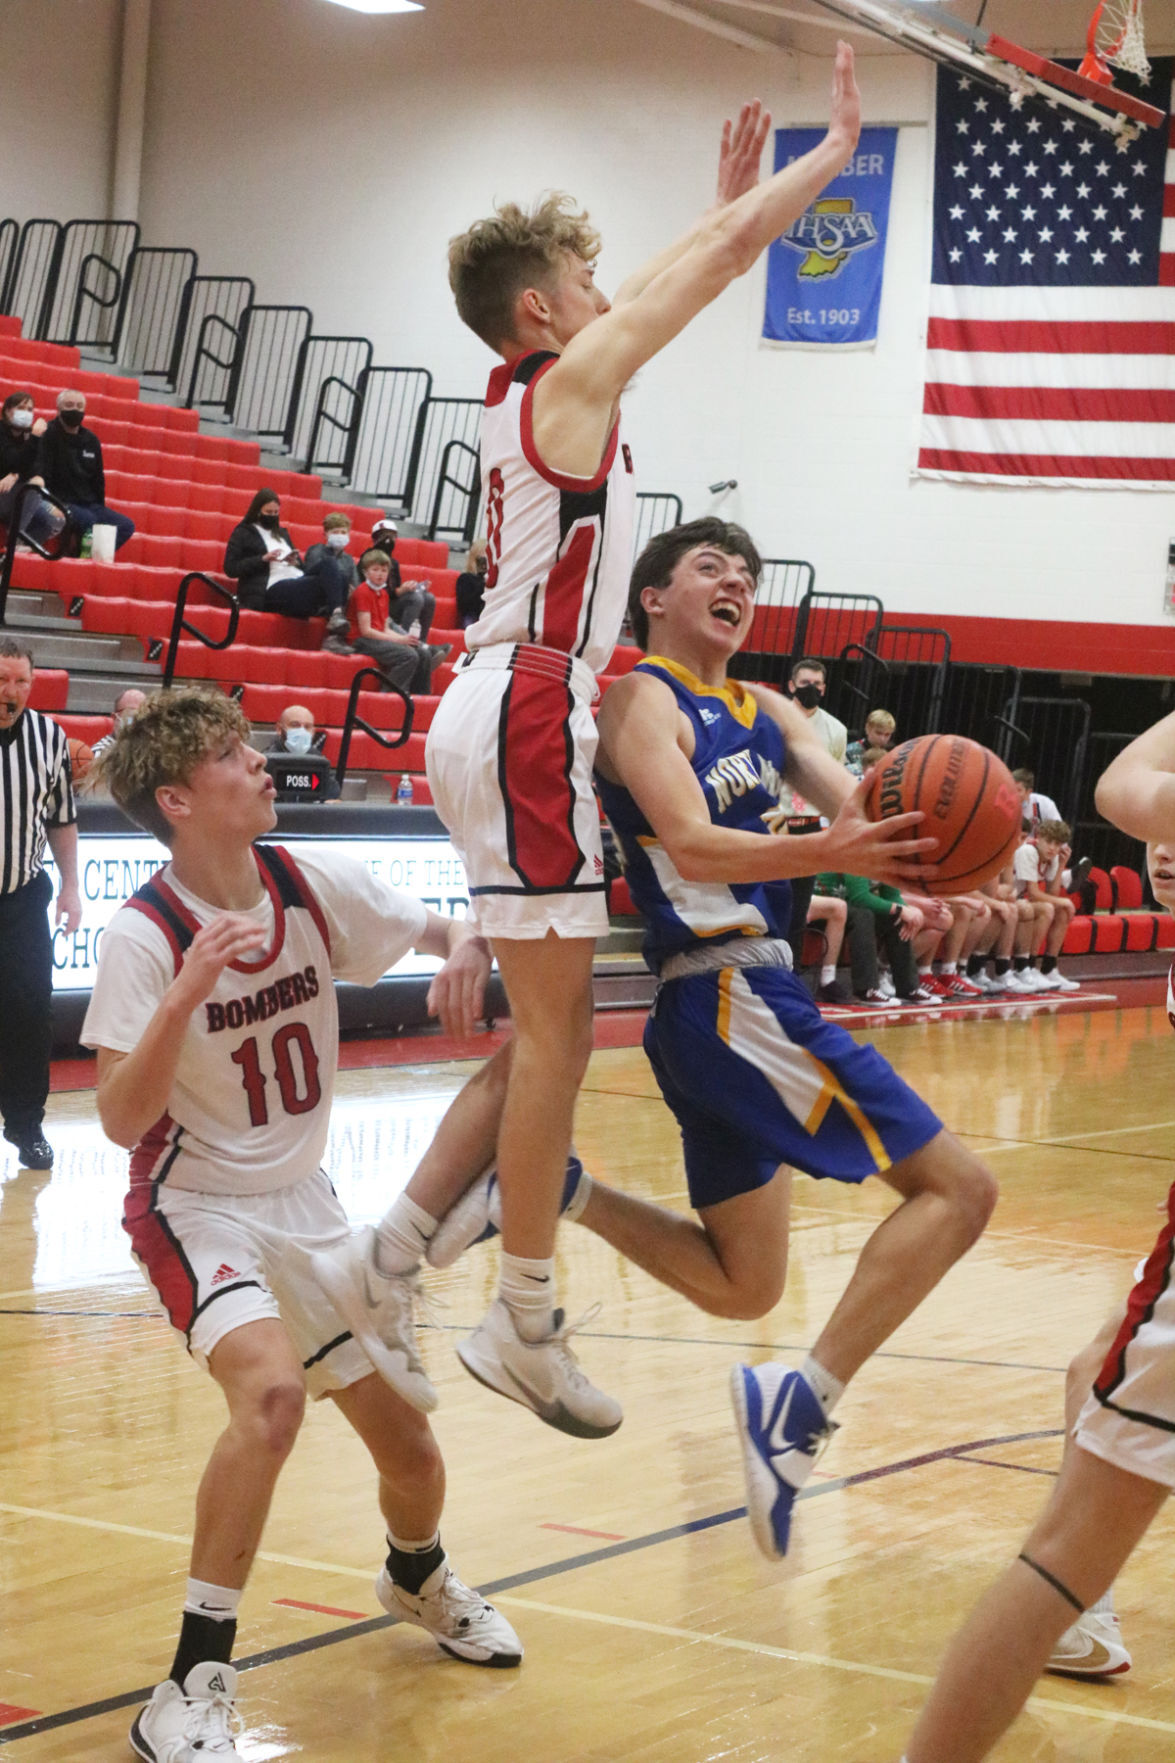 Vikings' guards too quick for RCHS